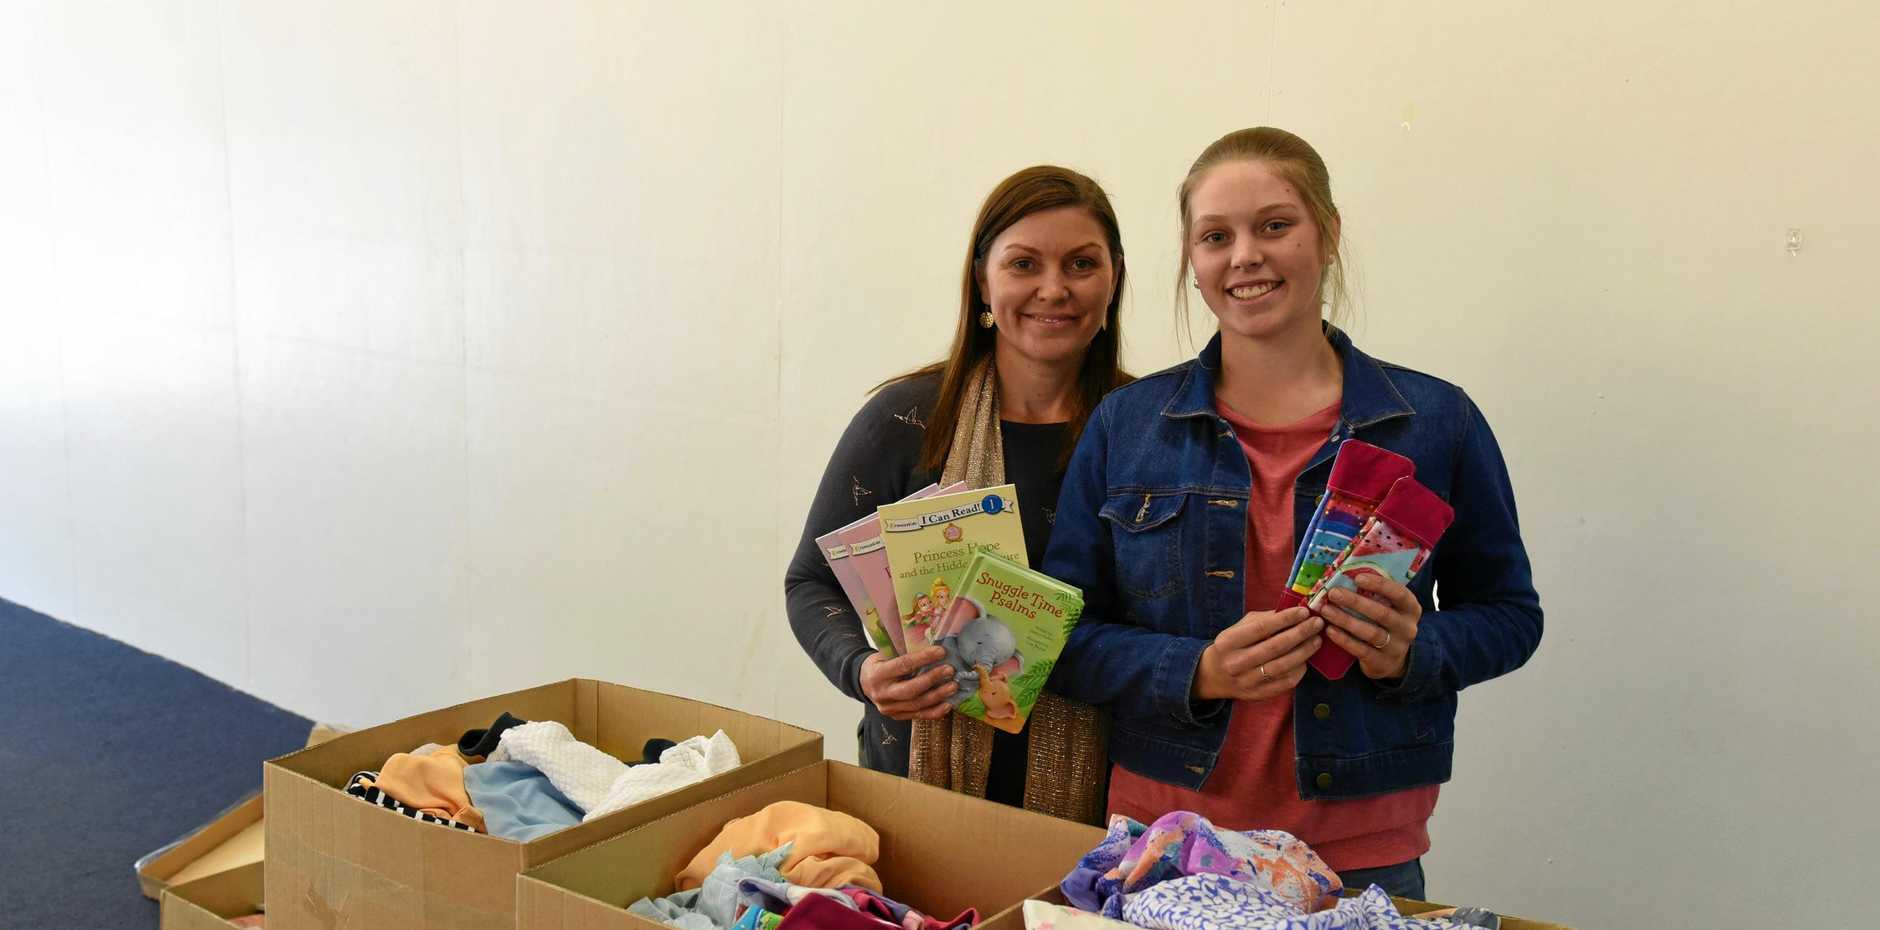 HUMANITARIAN: Ainsley and Miriam Shepherd with some of the items they have bought for African children with proceeds from the student's cooking.